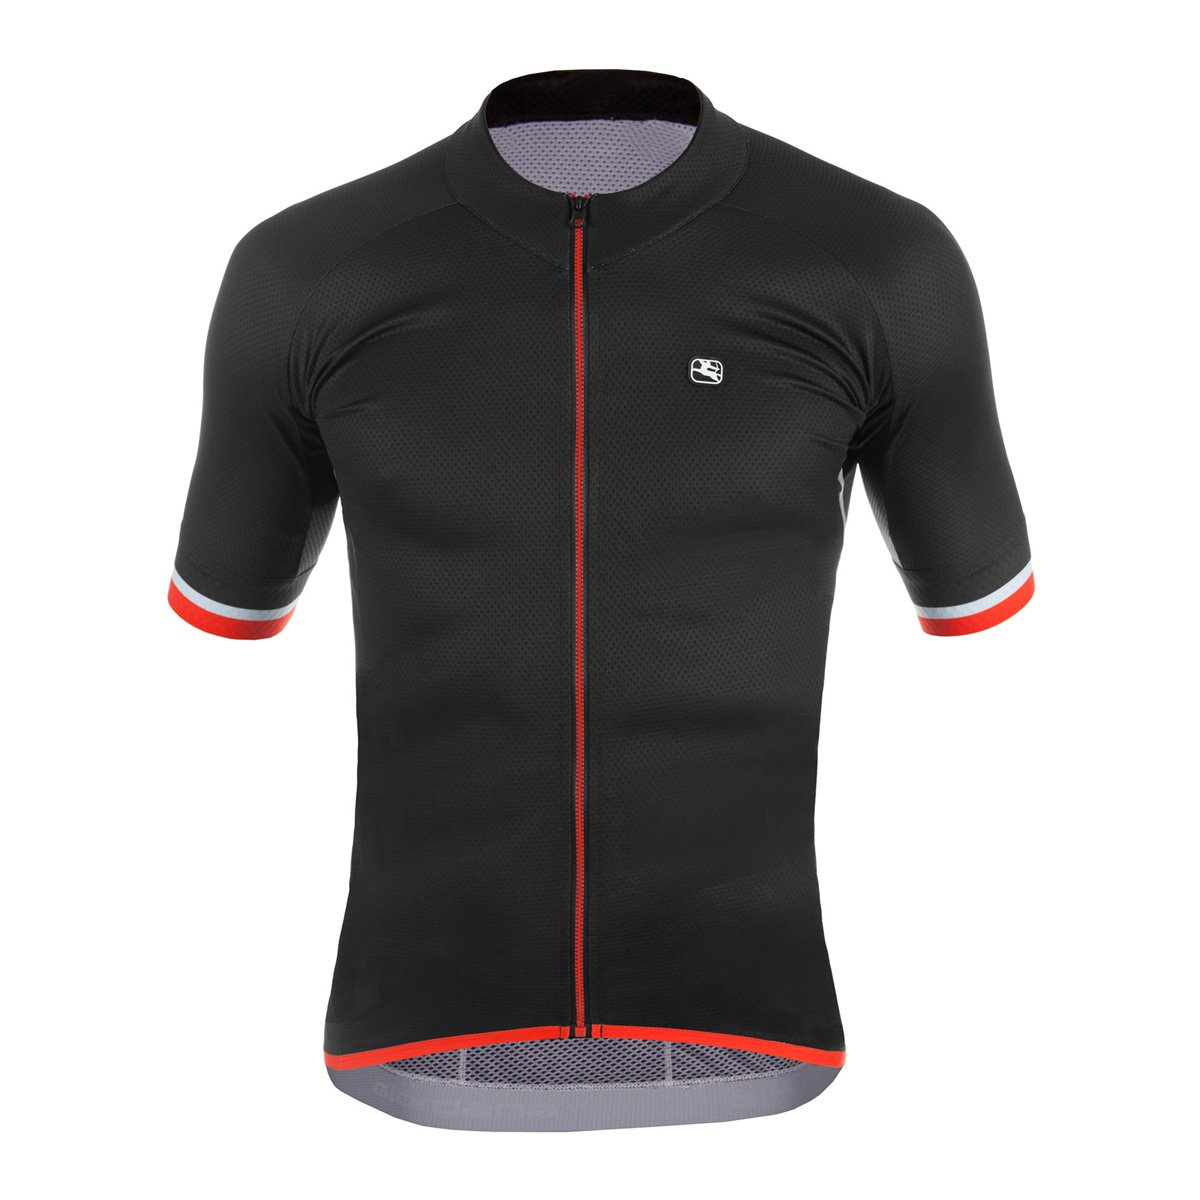 Giordana 2016メンズSilverline半袖サイクリングジャージー – gi-s6-ssjy-silv B01BT5WRDC X-Large|Black/Red Accents Black/Red Accents X-Large